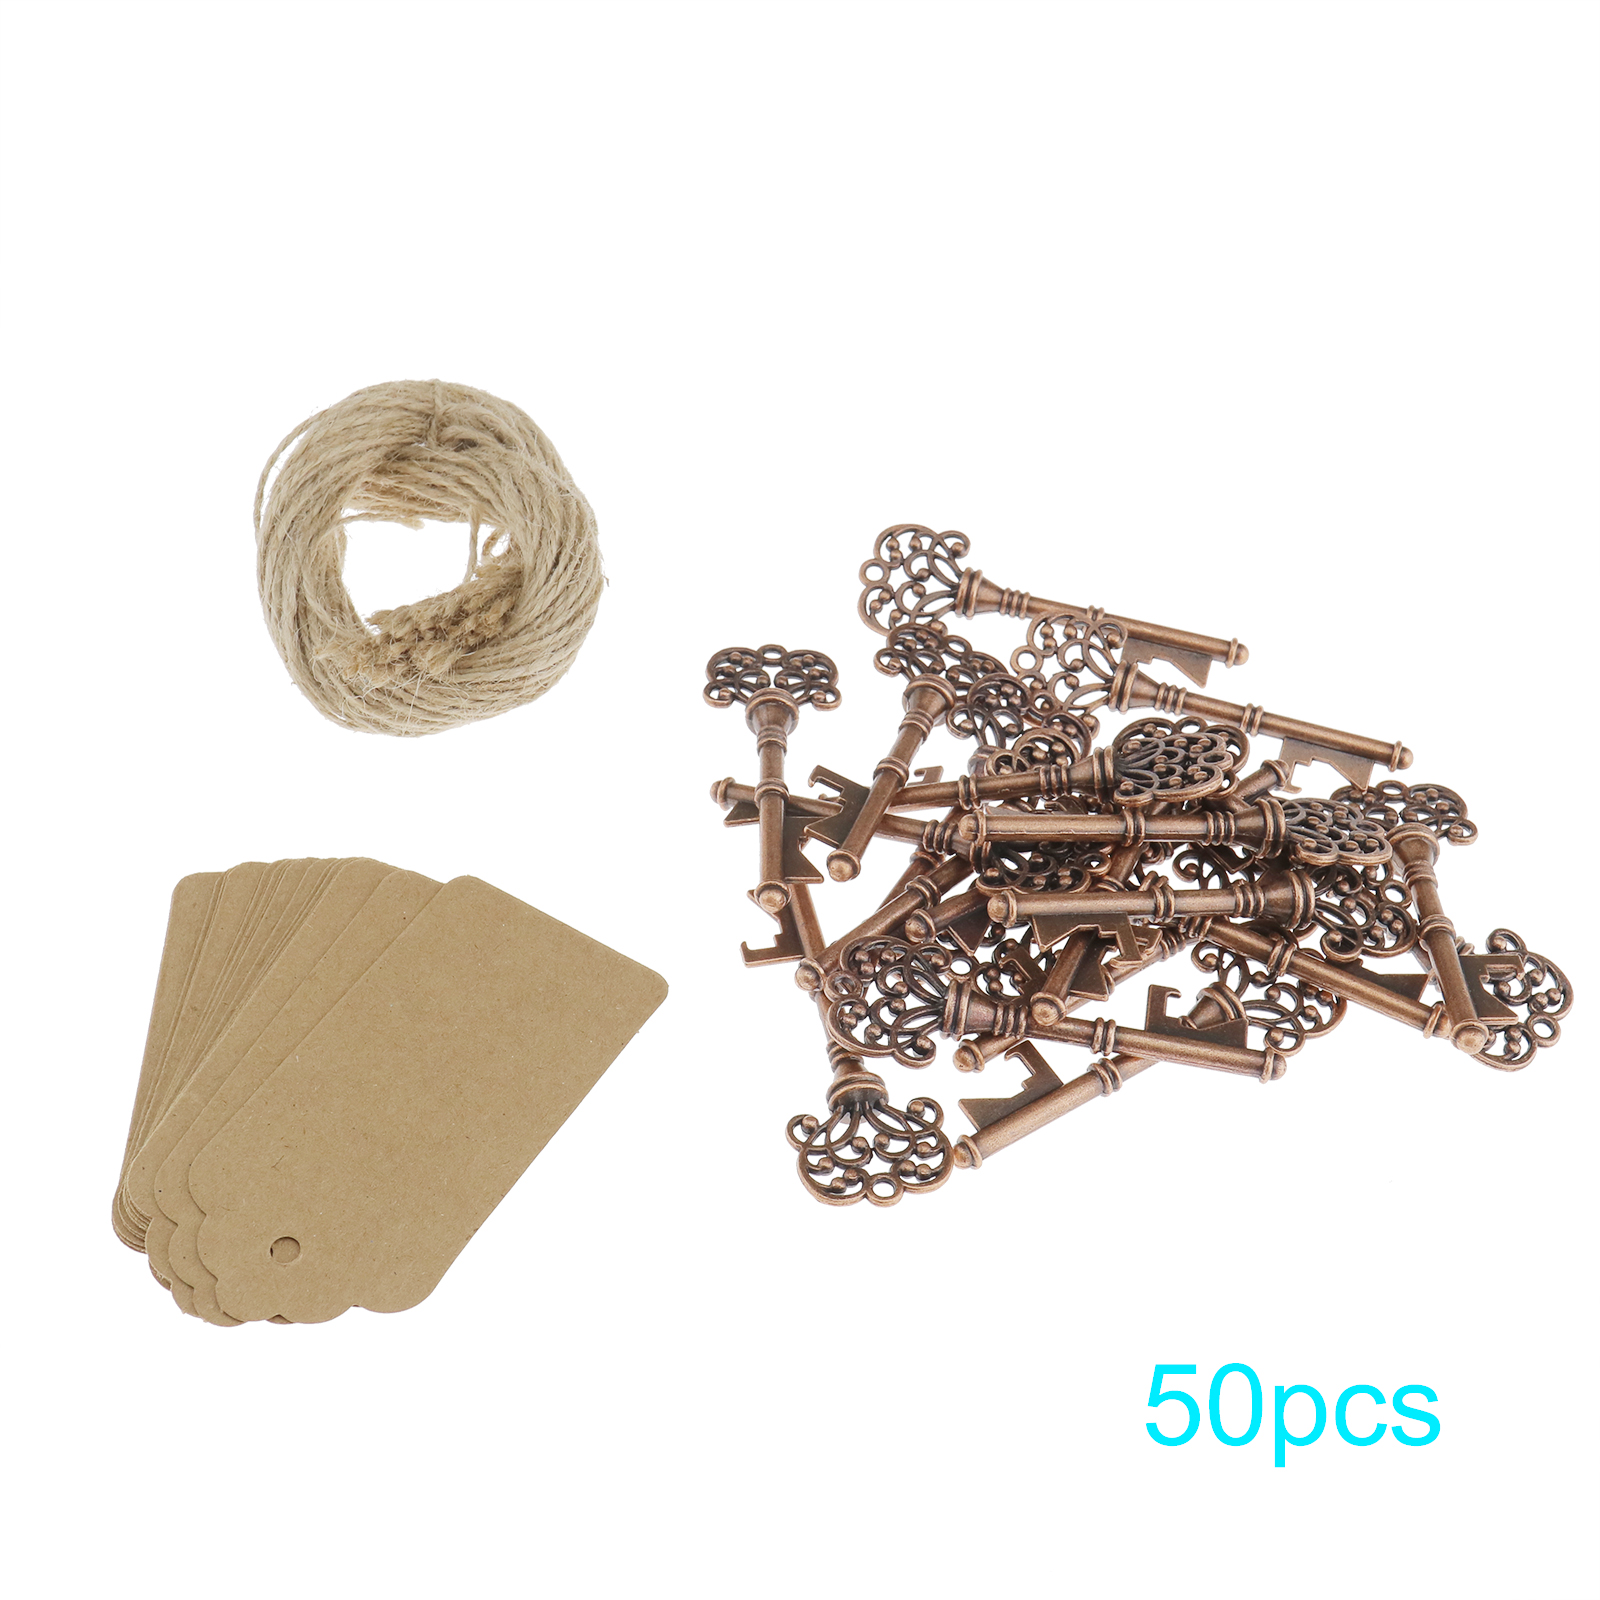 50X Antique Key Bottle Opener + Kraft Tag Card Twines For Party ...